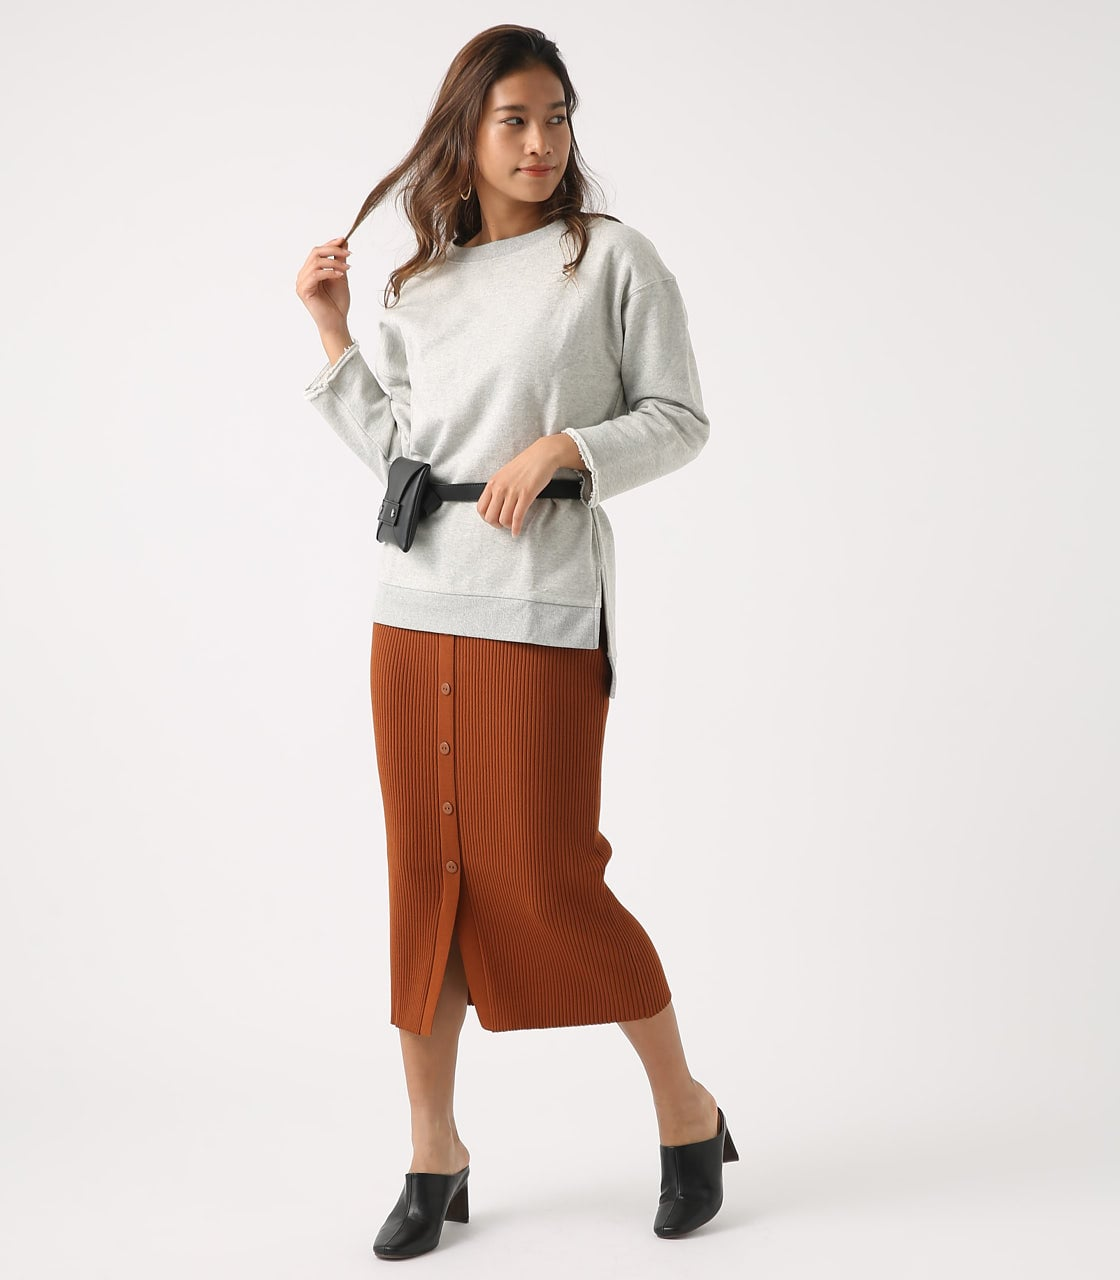 BUTTON RIB KNIT SKIRT 詳細画像 BRN 4